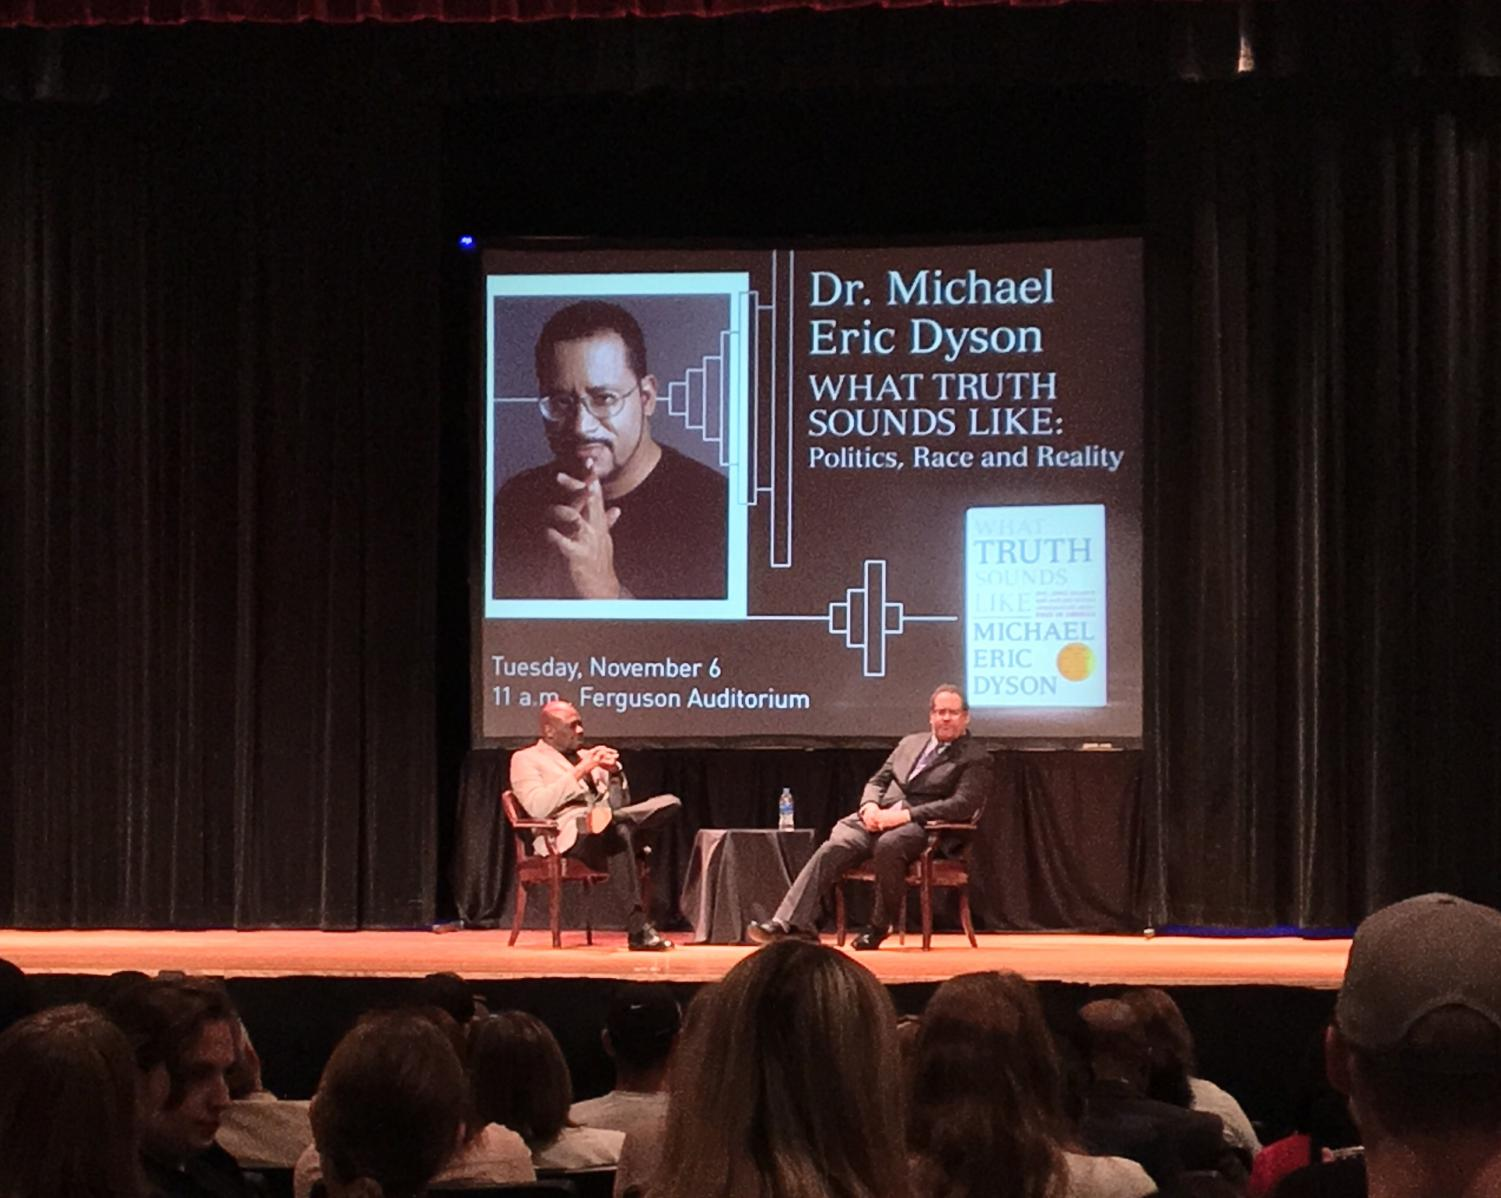 Dr  Michael Eric Dyson speaks on social issues, possible